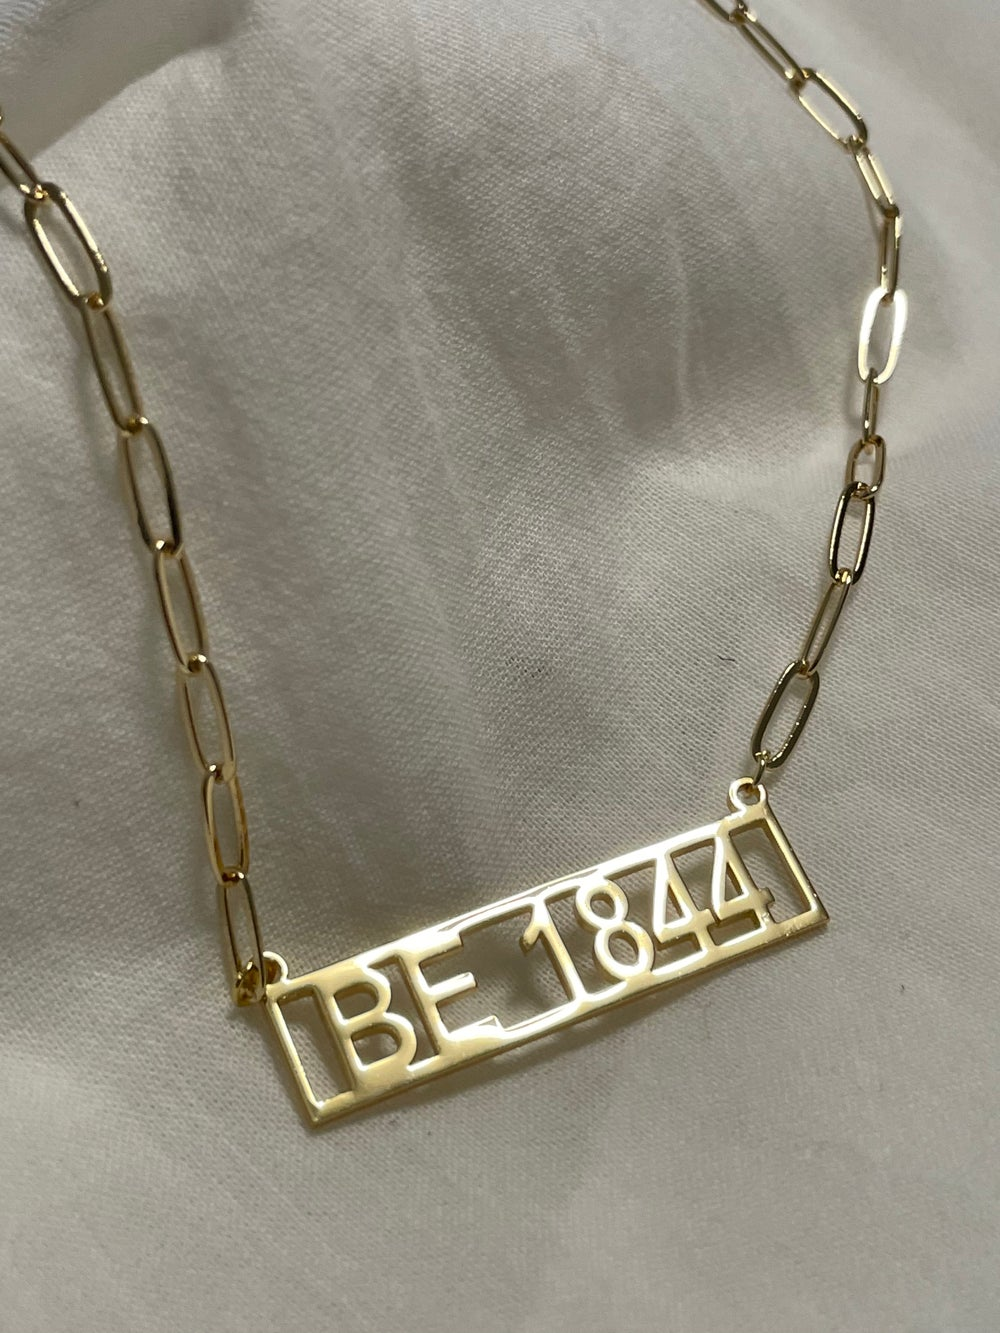 BE 1844 Bahá'í Necklace - Stainless Steel